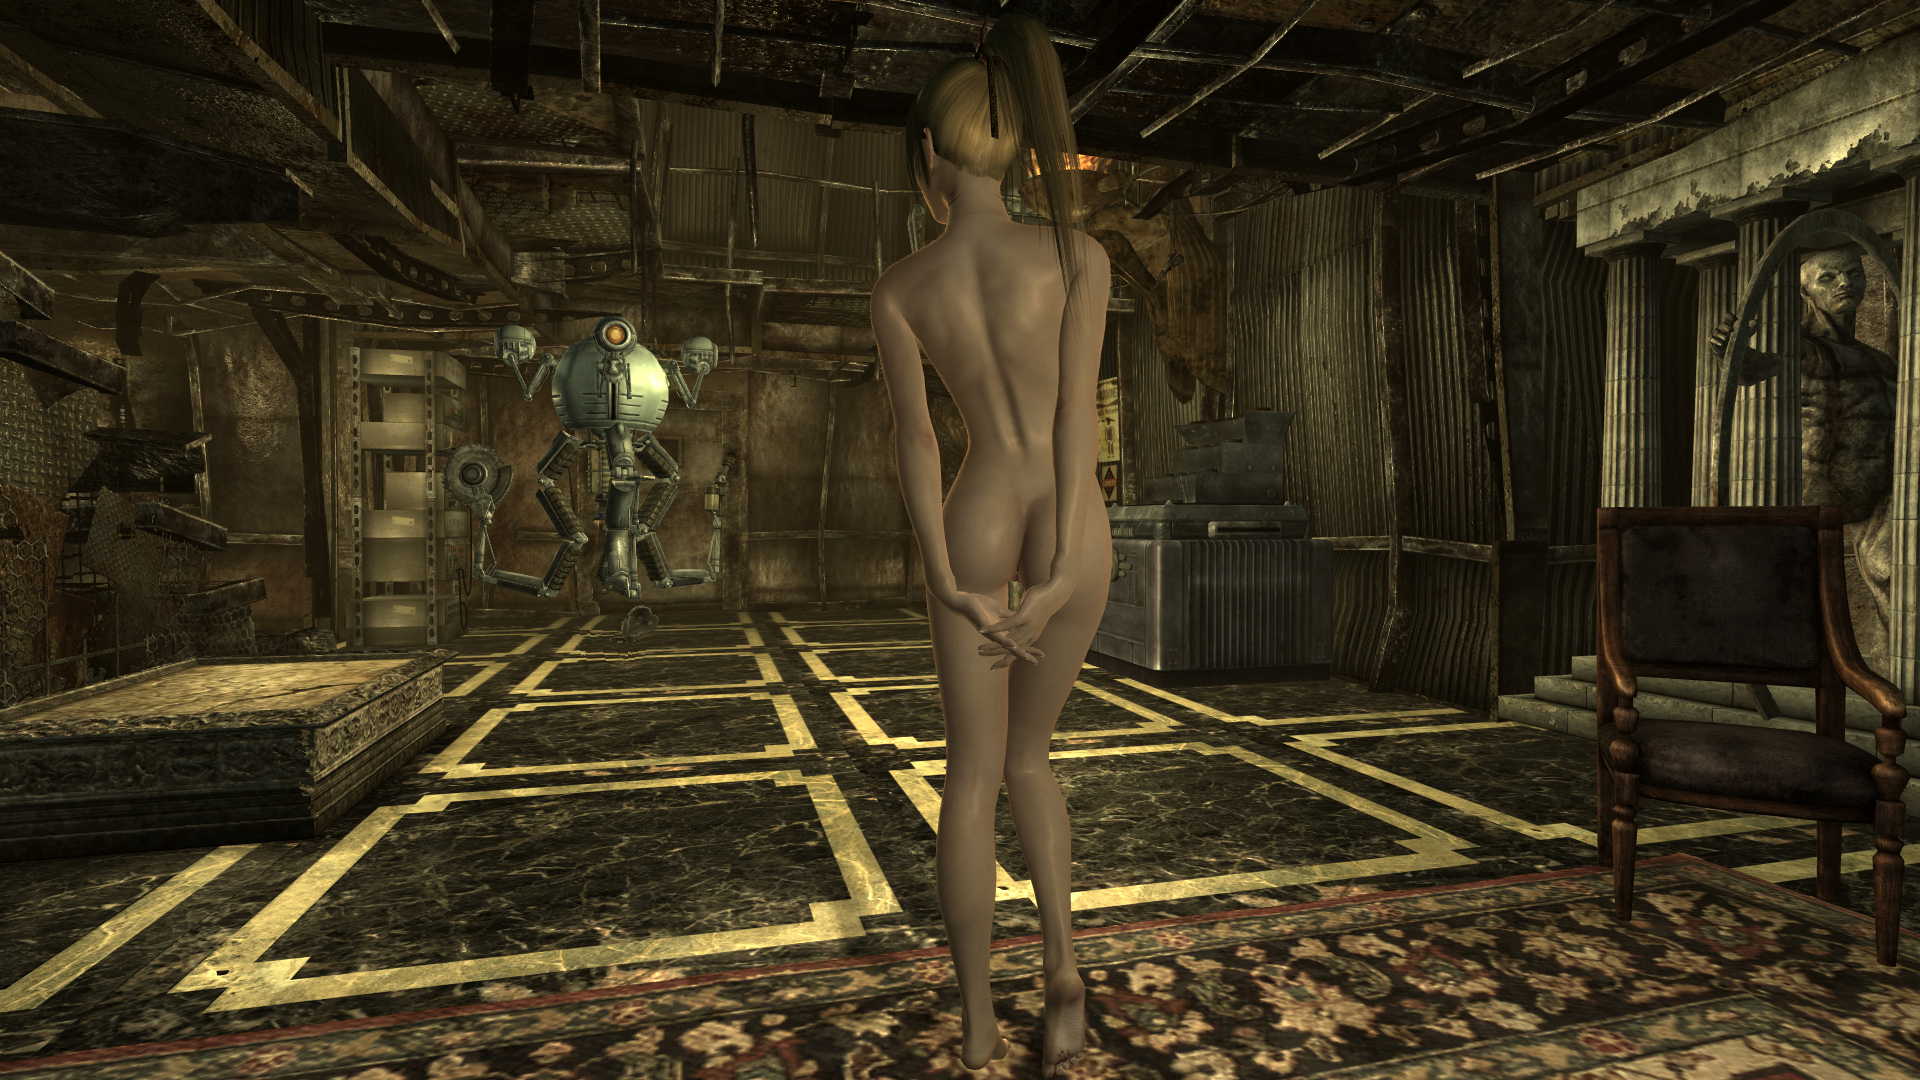 Nudepatch net fallout 3 clothes nude addon anime movies